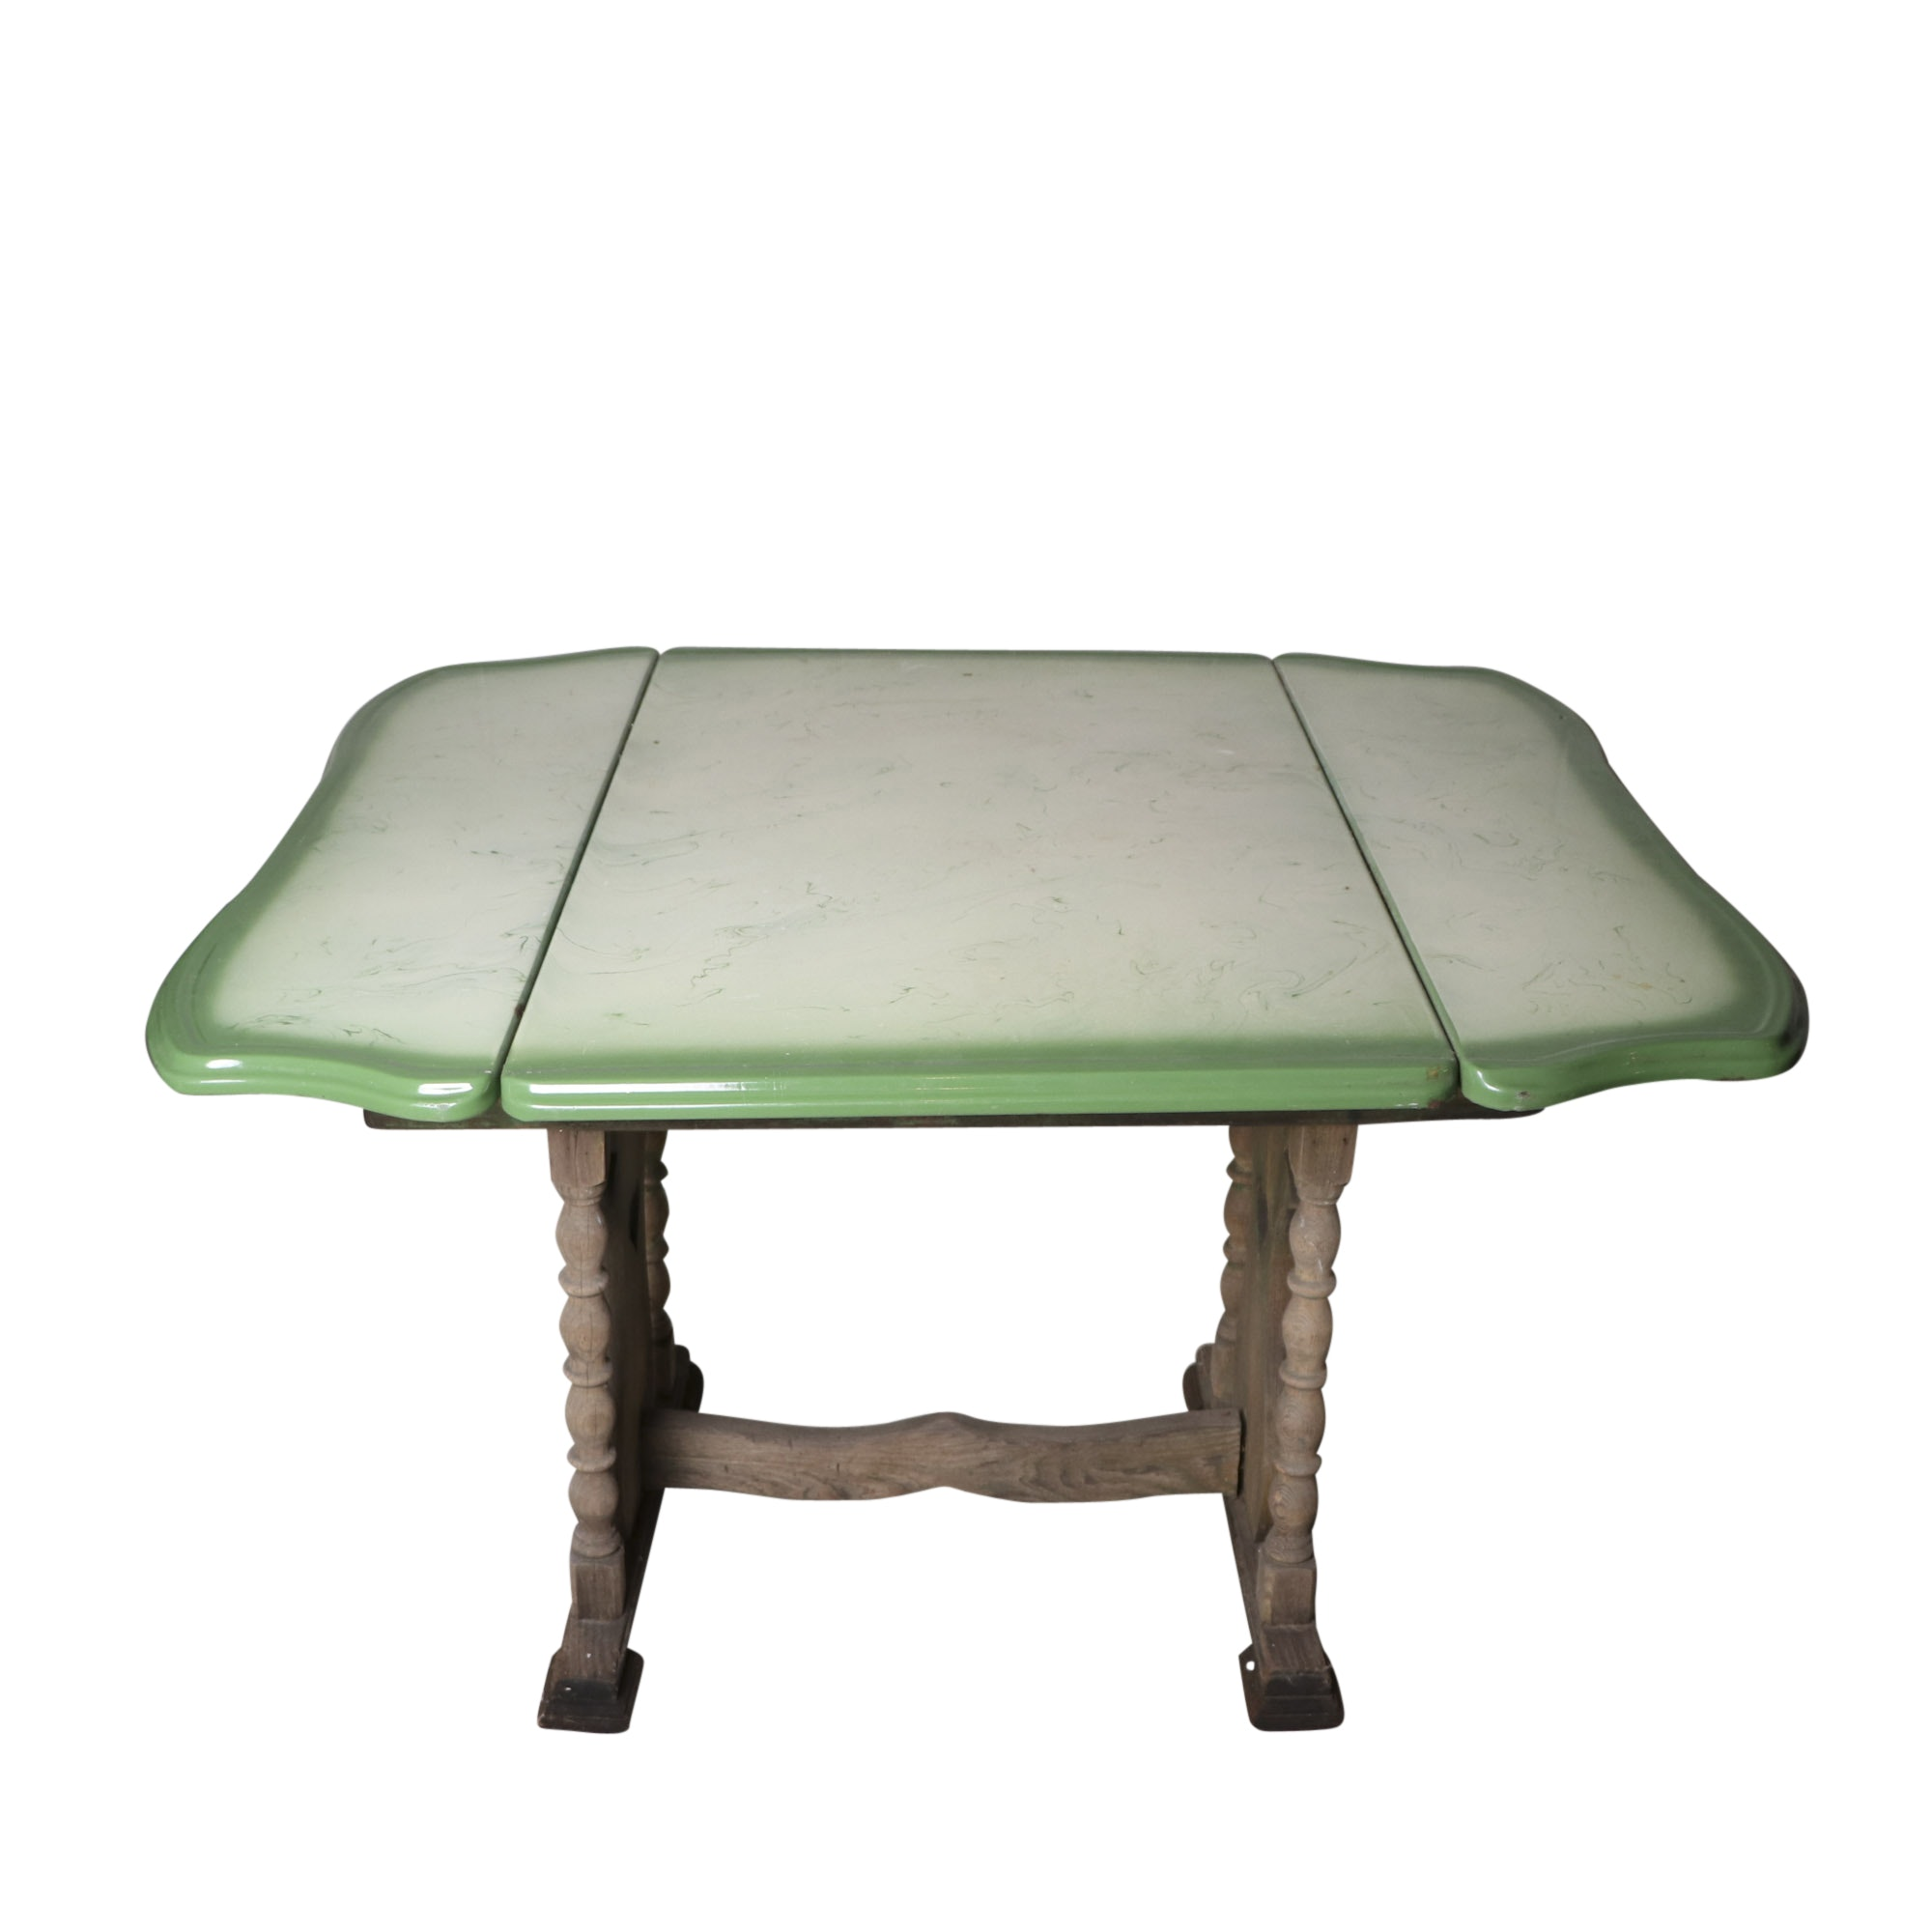 Delicieux Vintage Wood Trestle Table With Enameled Tin Top ...